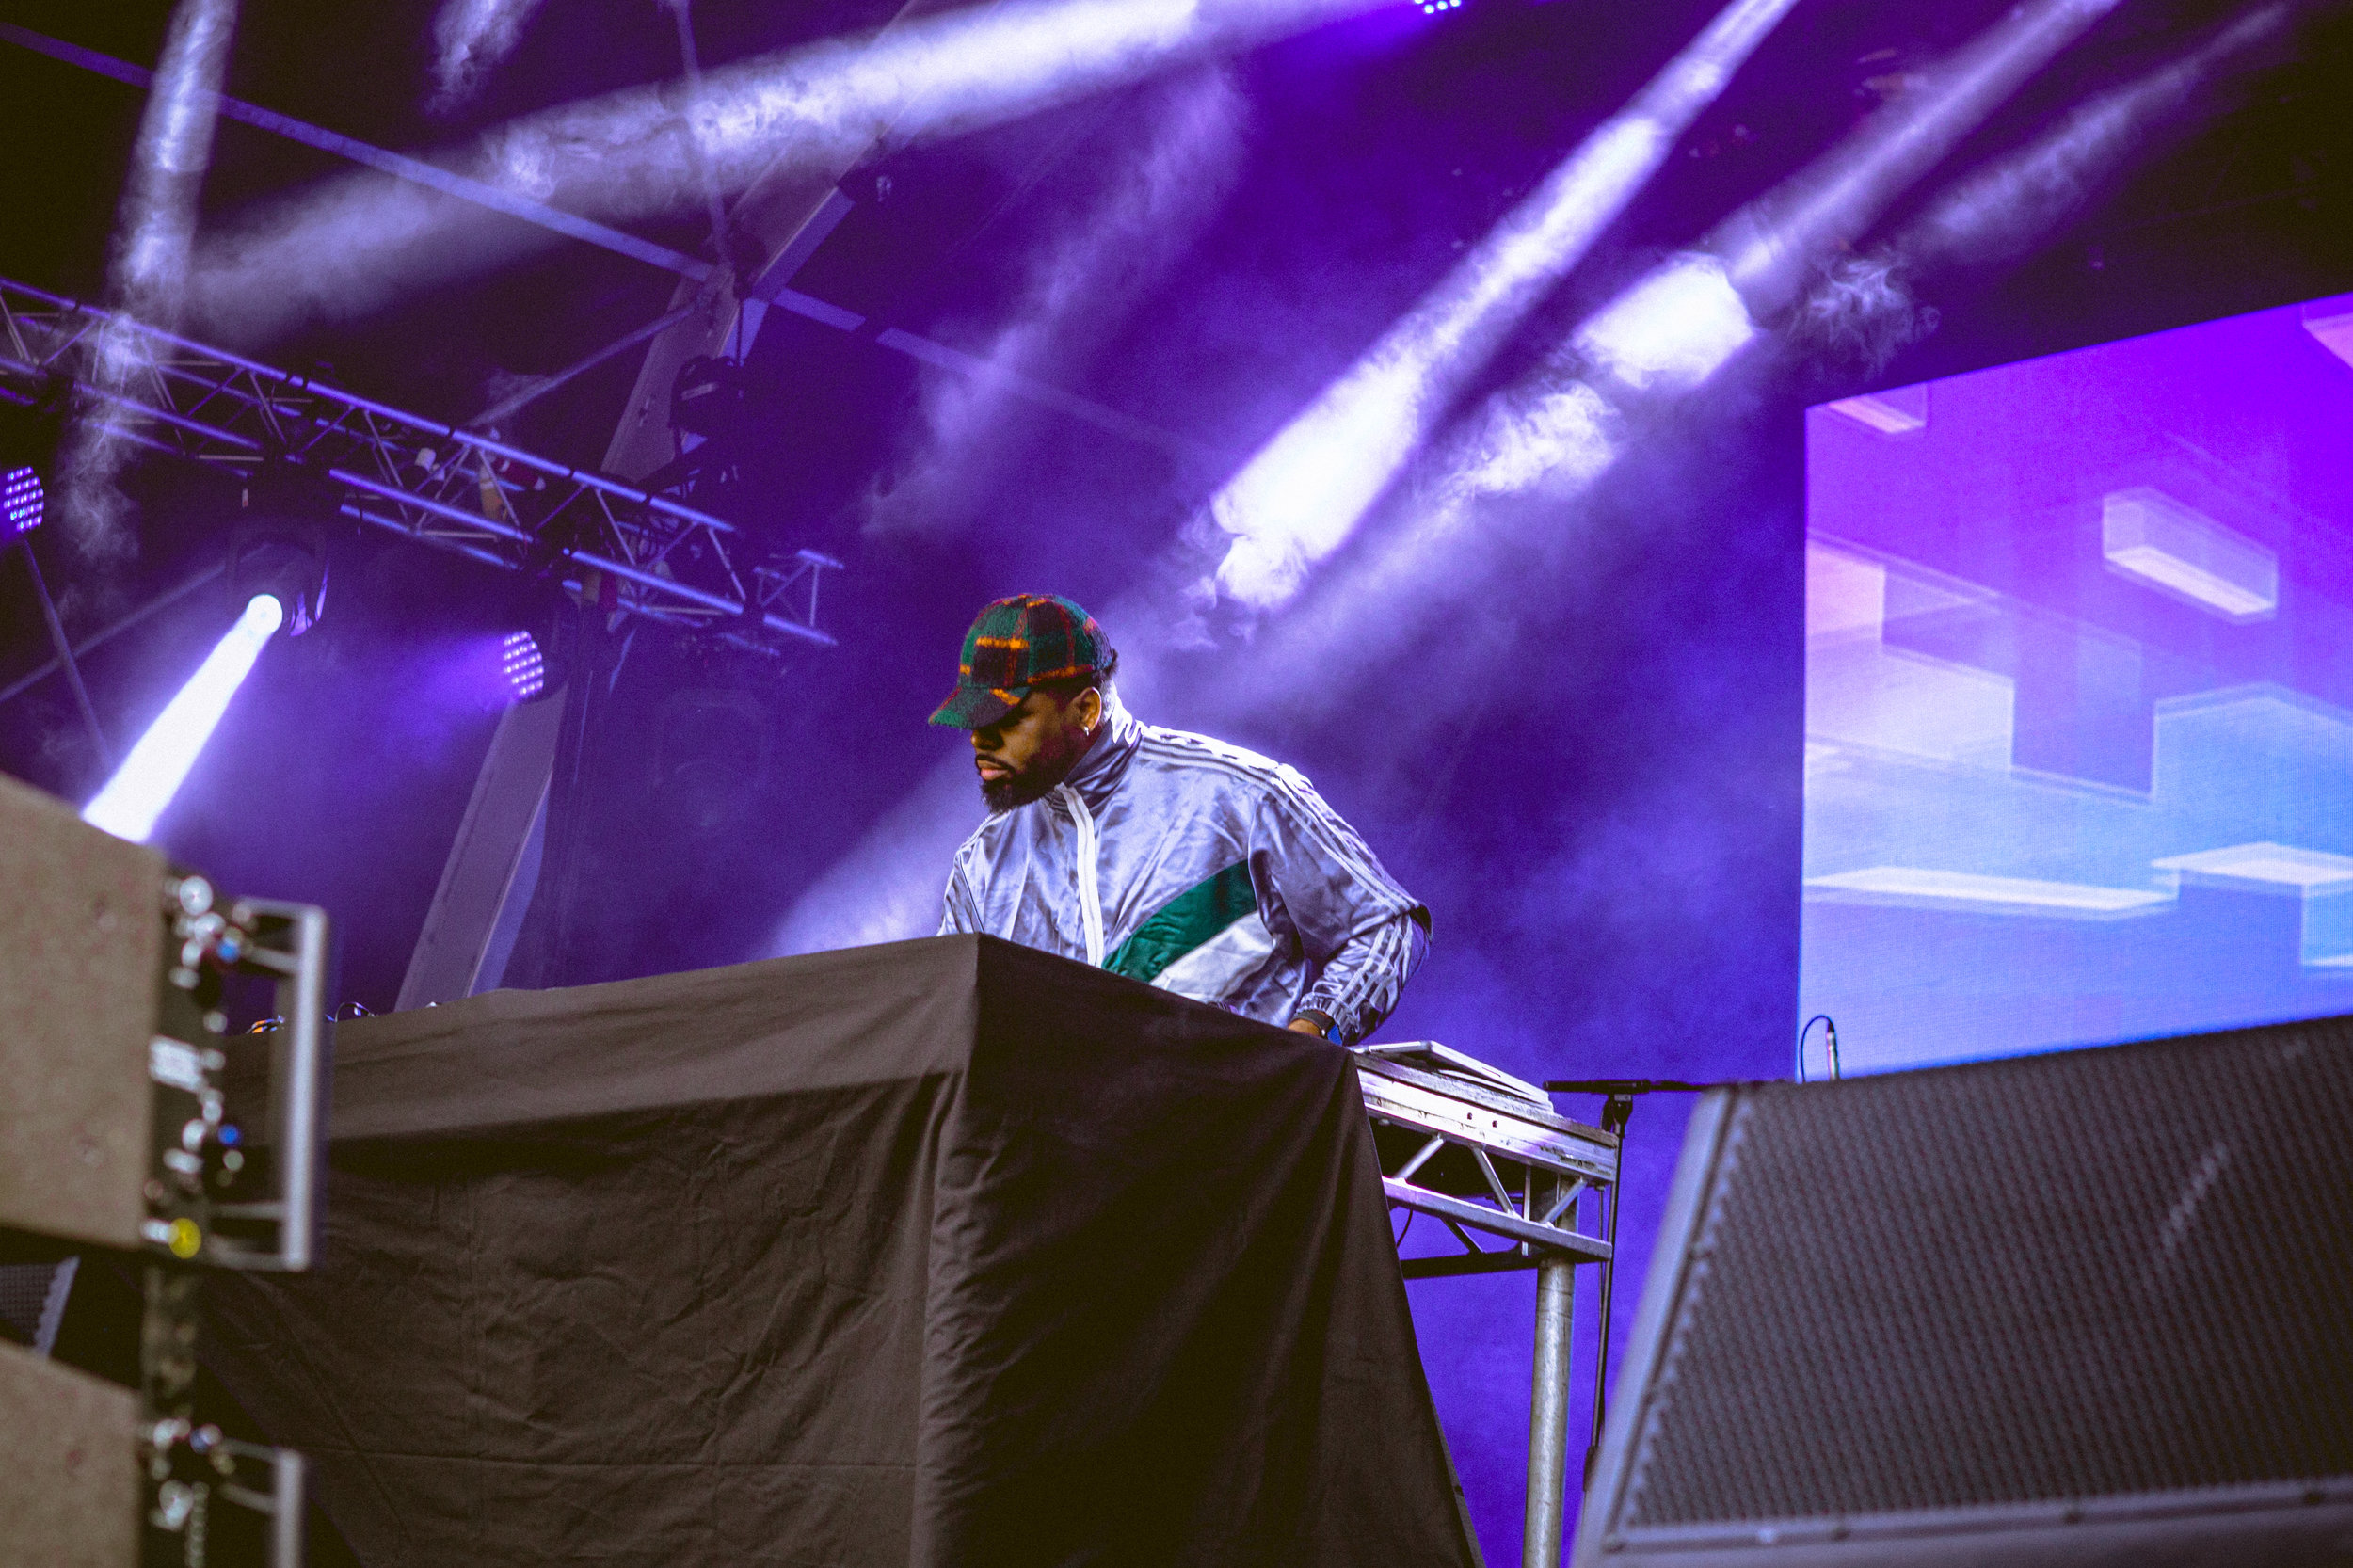 Andre Power DJing at Somerset House: Summer Series with Soulection | Photography by Rianna Gayle